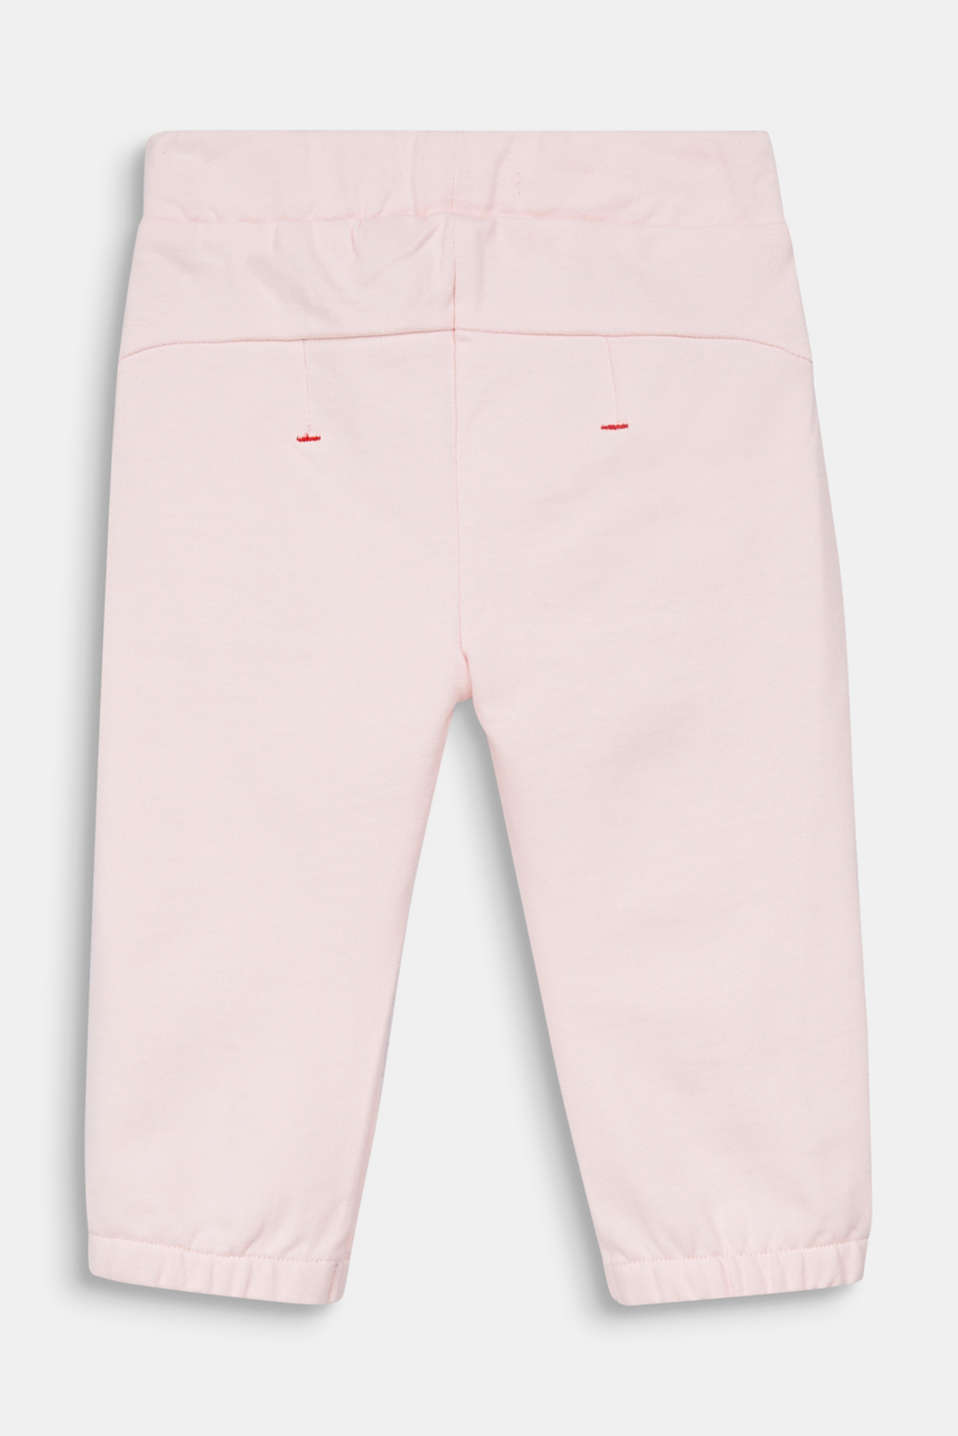 Tracksuit bottoms with a ladybug print, 100% cotton, LCLIGHT PINK, detail image number 1